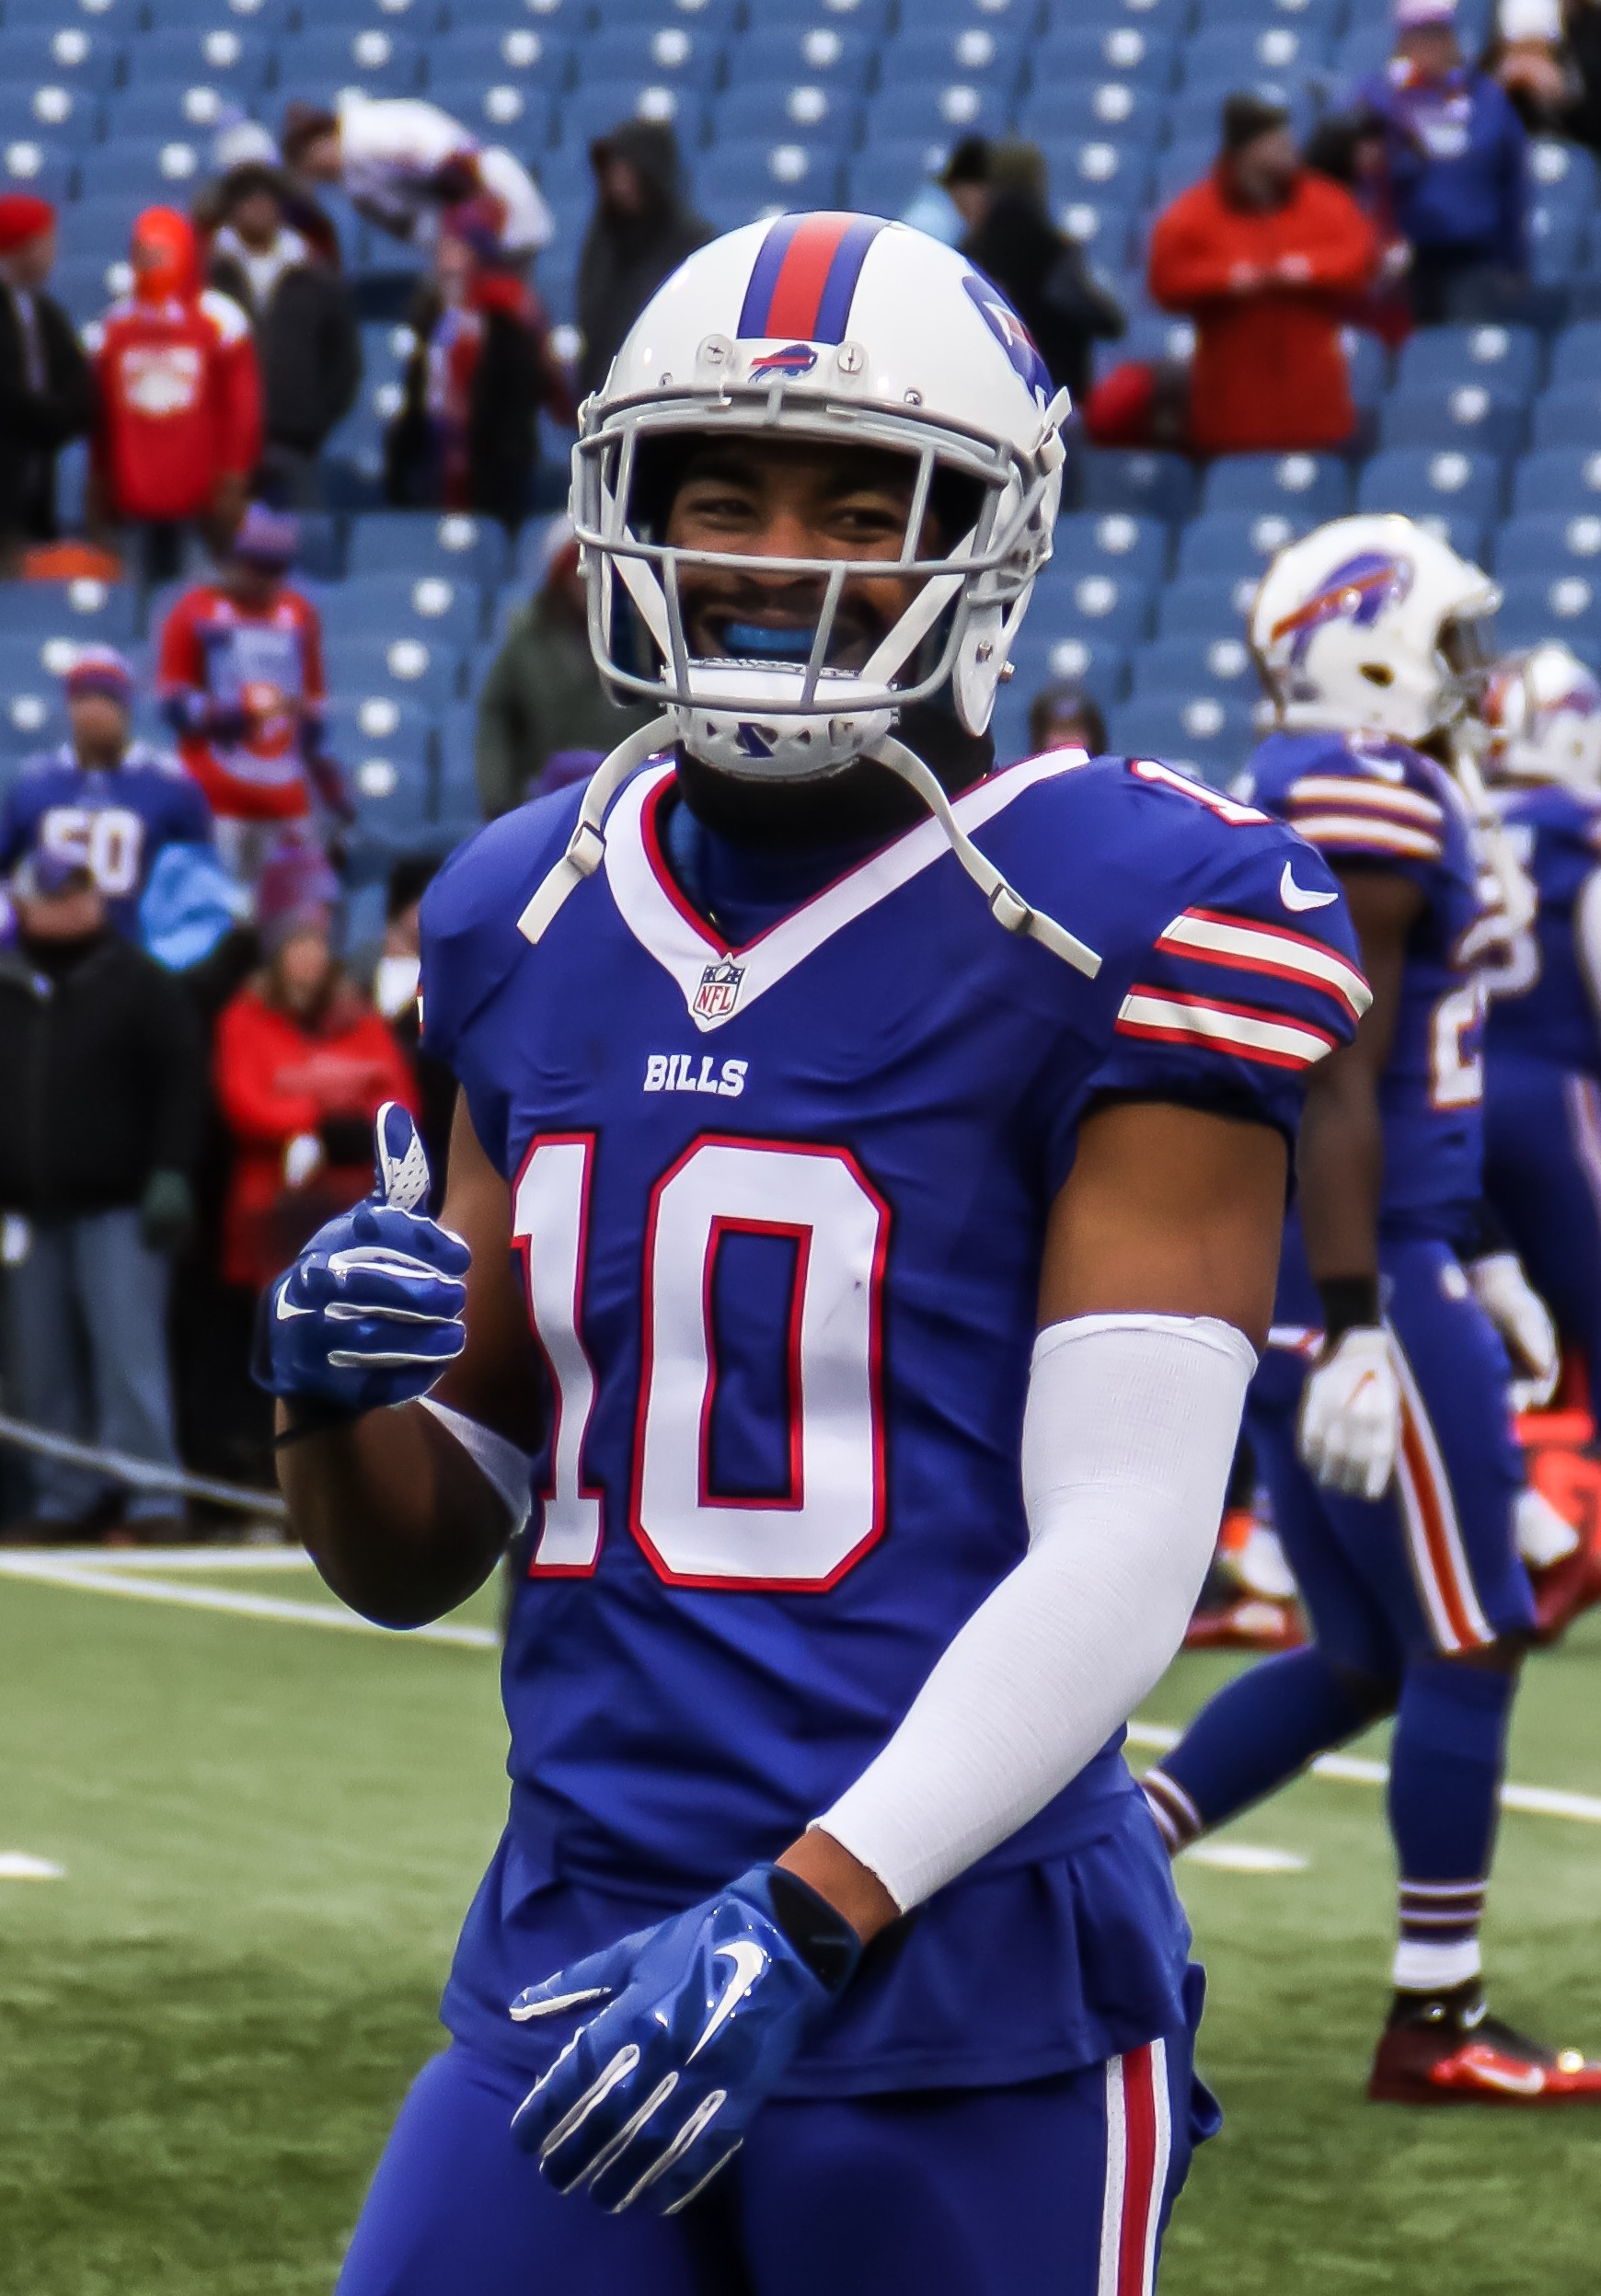 ca92d0ff Robert Woods (wide receiver, born 1992) - Wikipedia